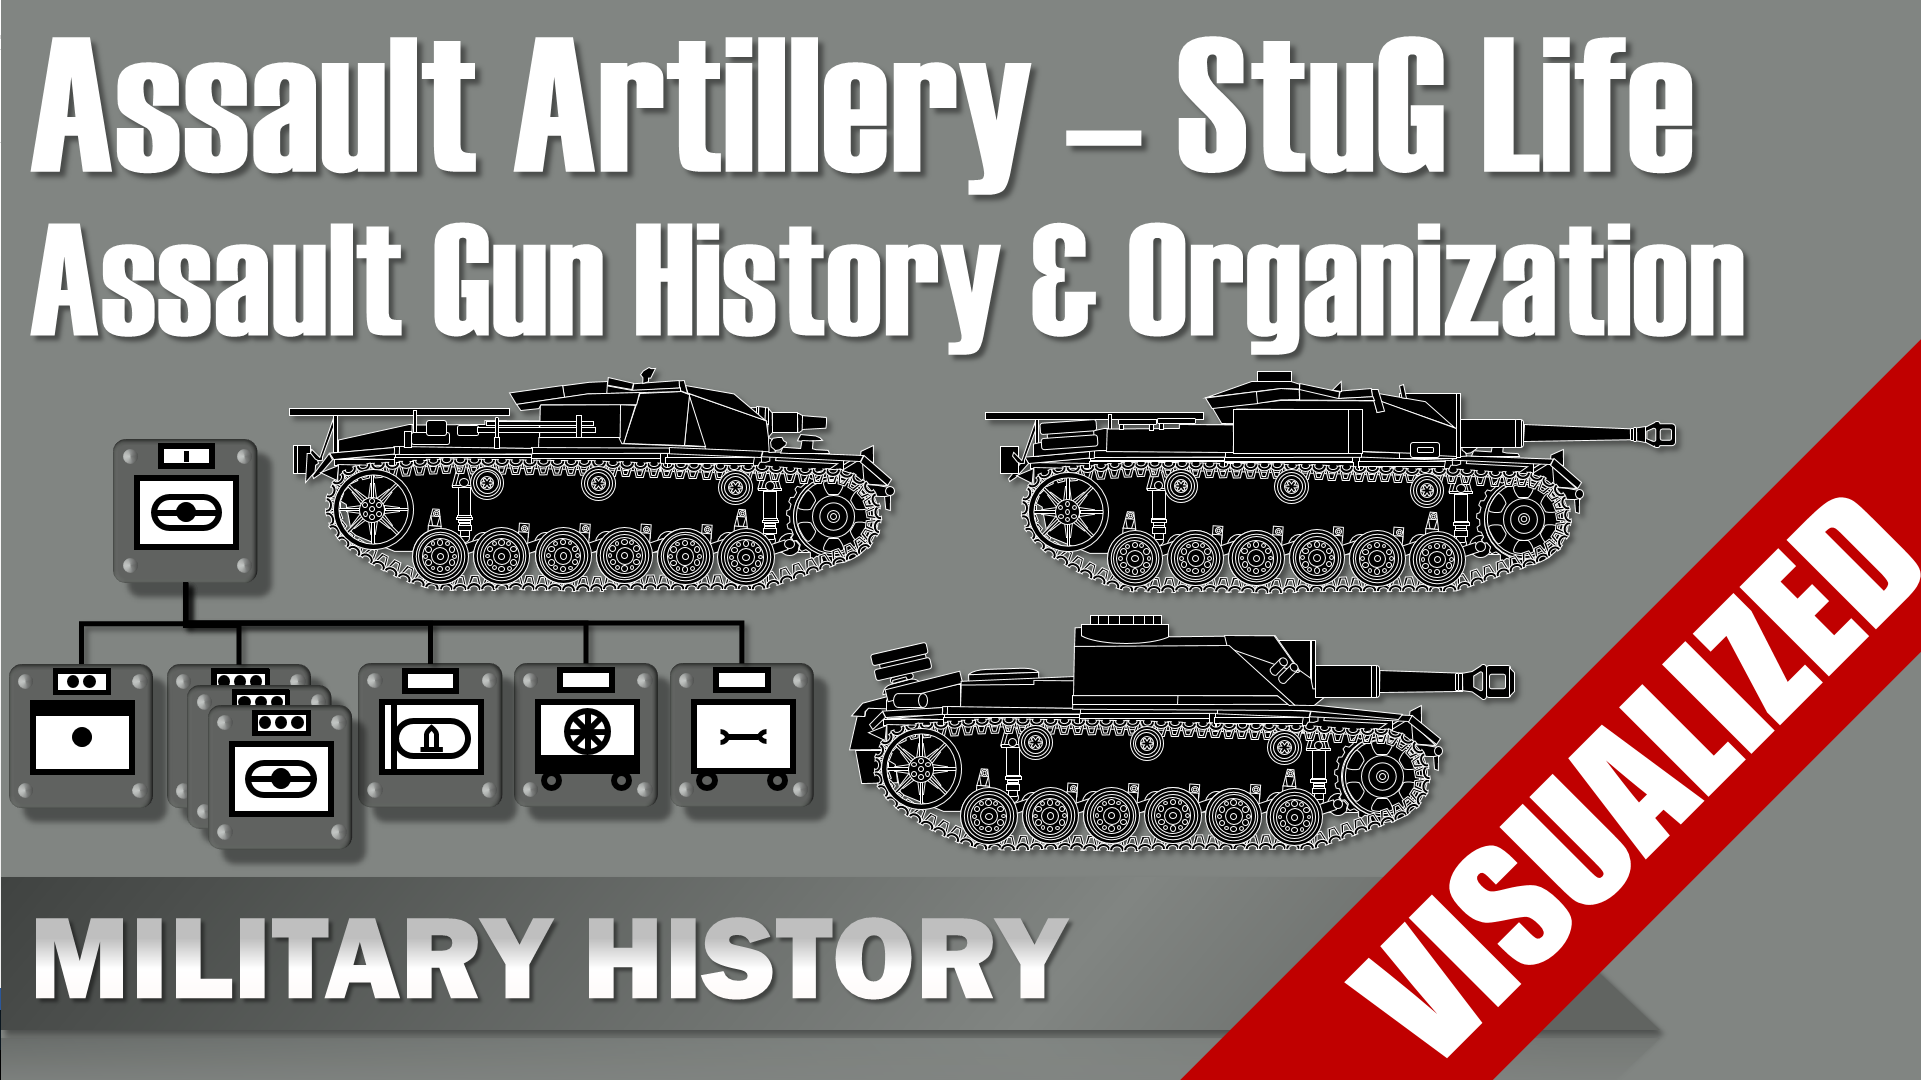 Assault Artillery –  History & Organization of Assault Gun Units #Stug Life